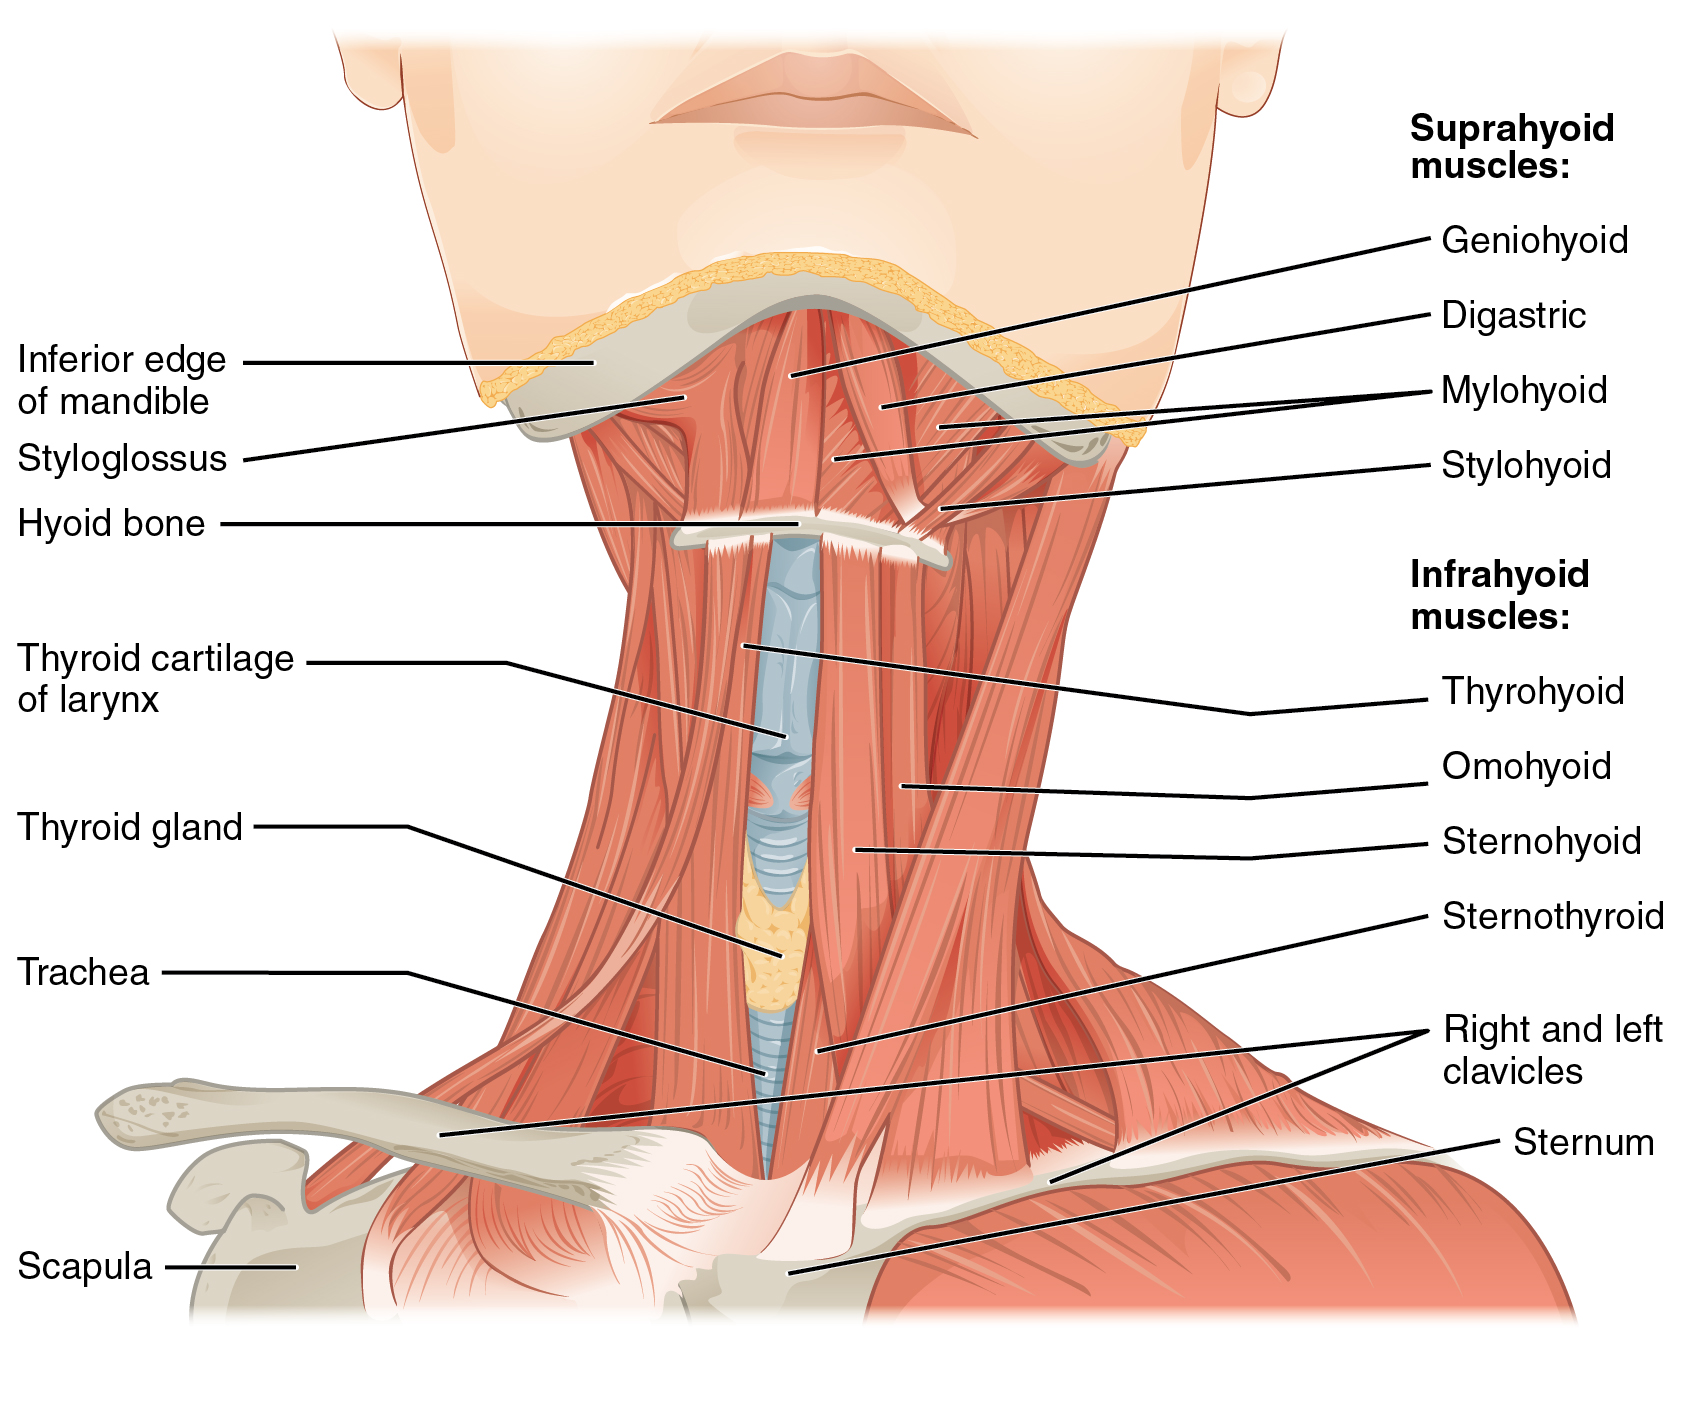 axial muscles of the head, neck, and back · anatomy and physiology, Muscles